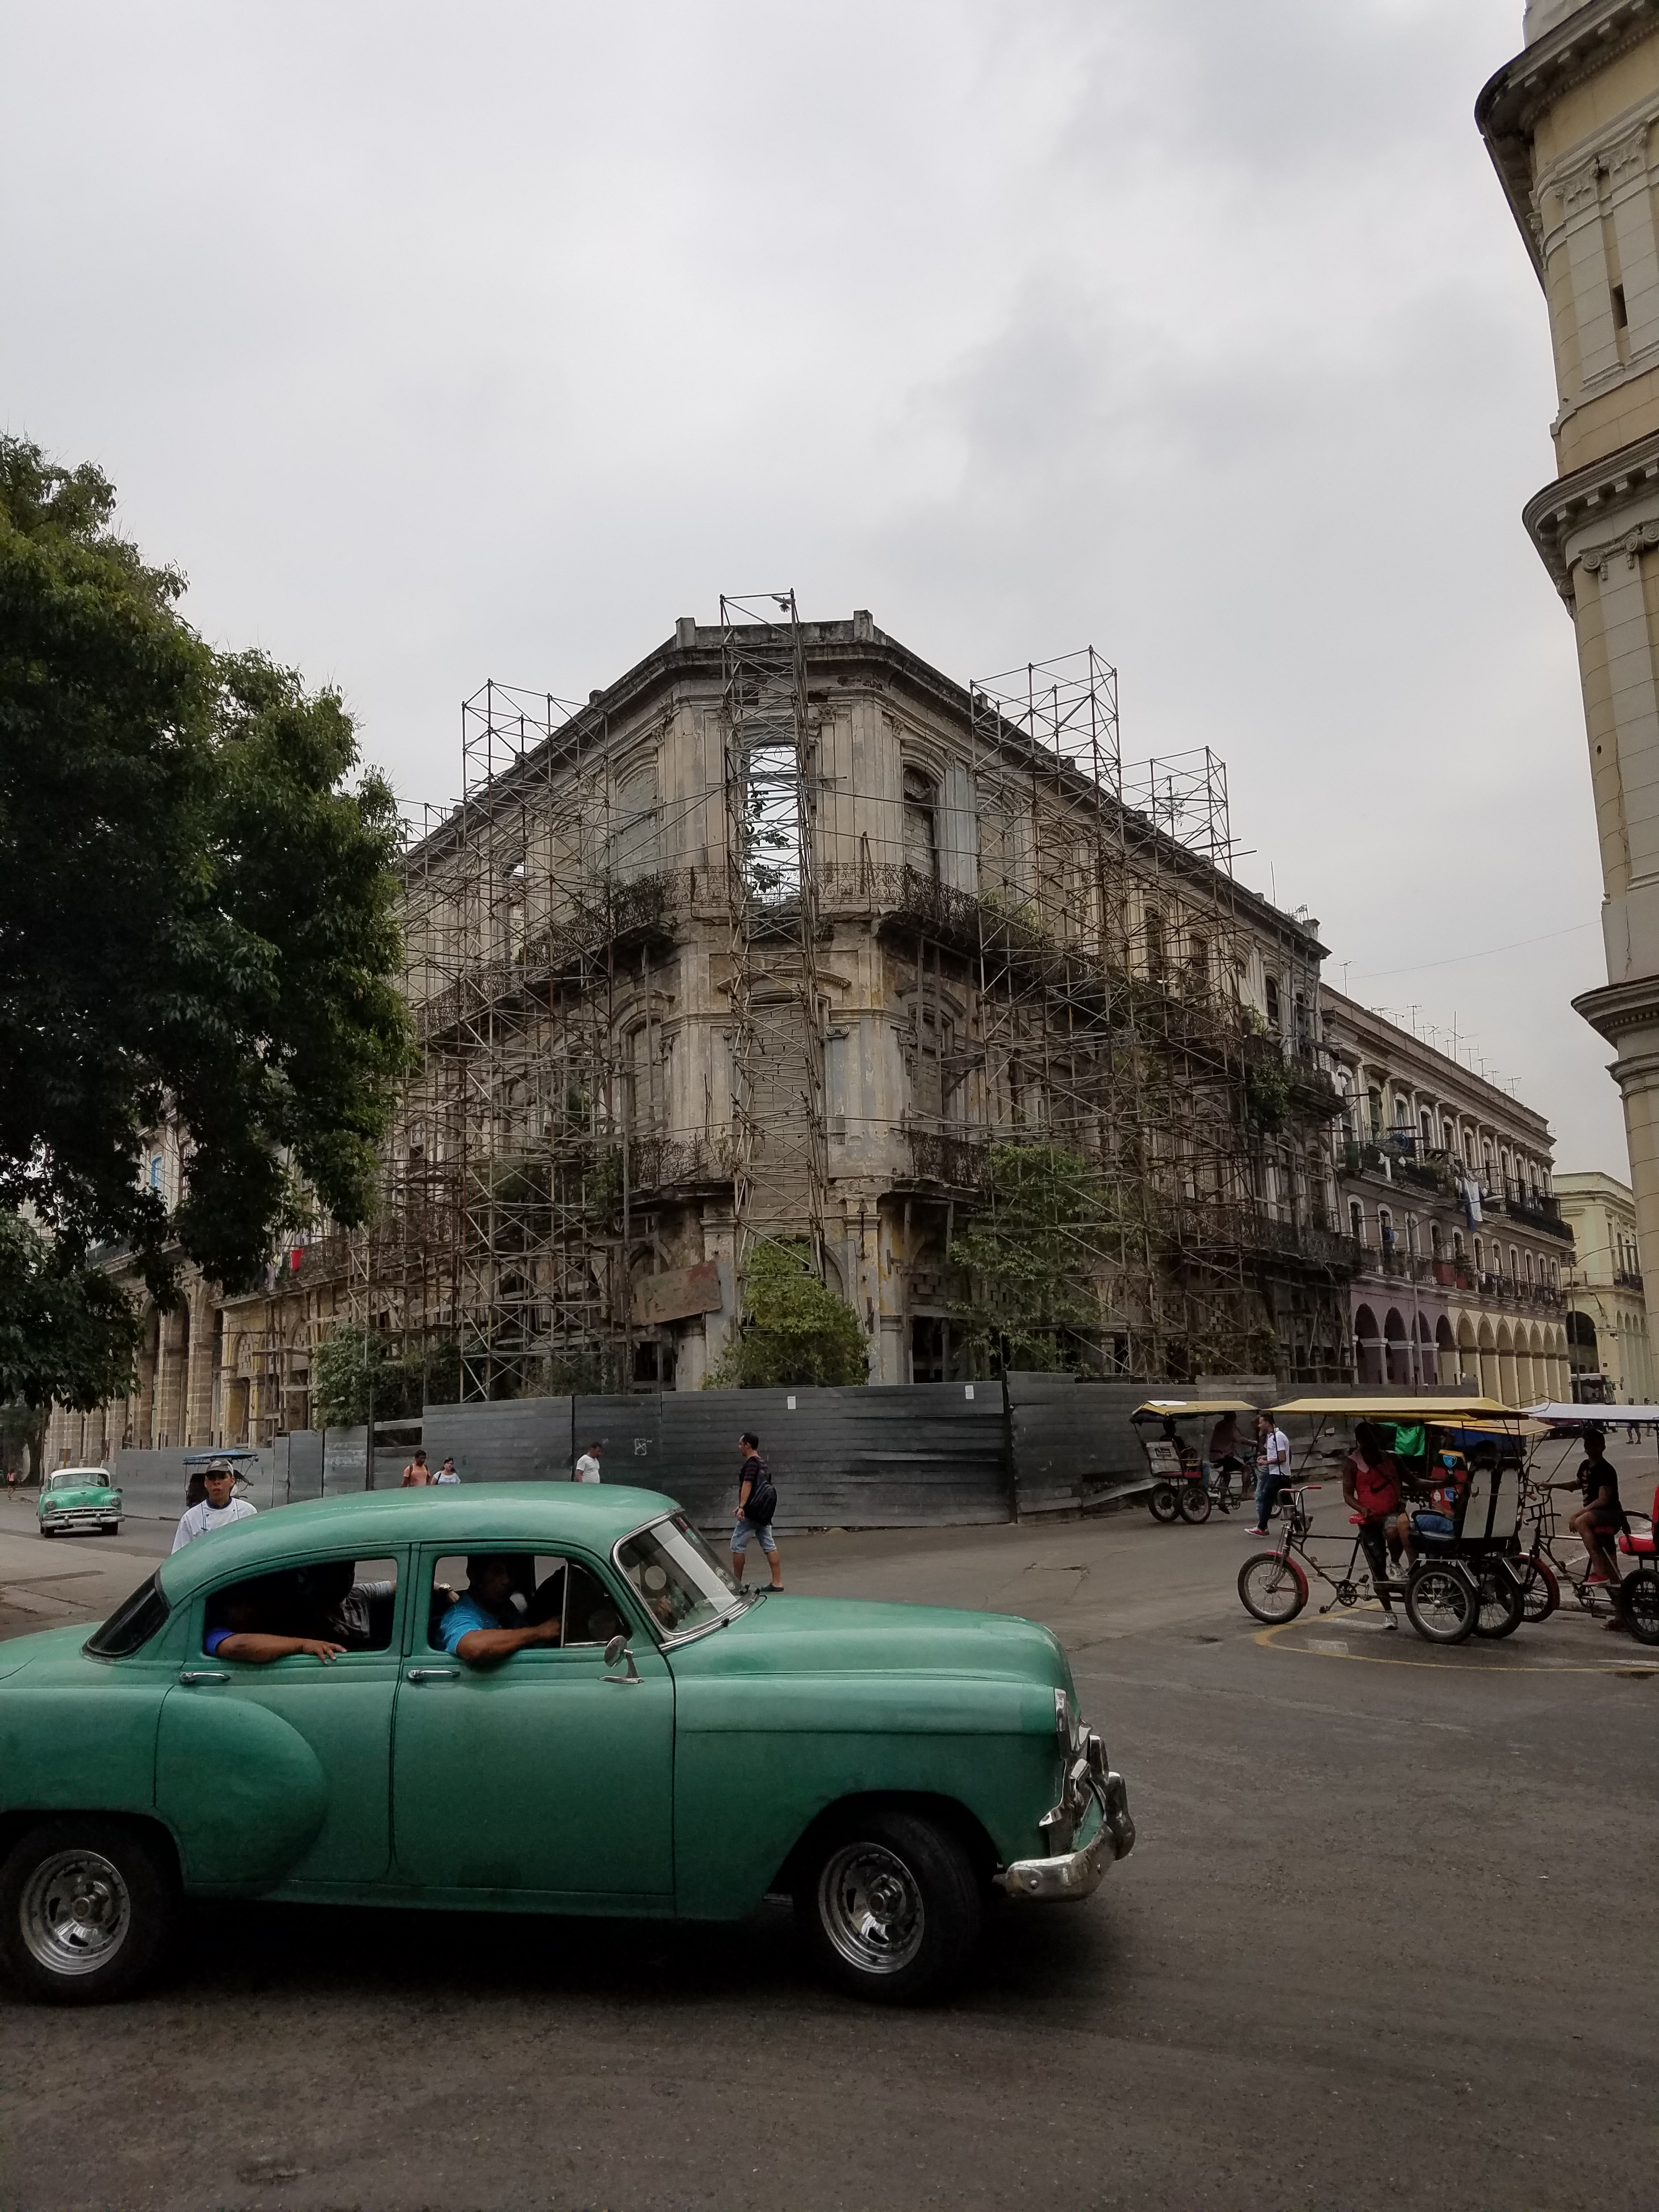 """""""Frozen in time"""" is how one British tourist described the sights of Havana. (9NEWS)"""